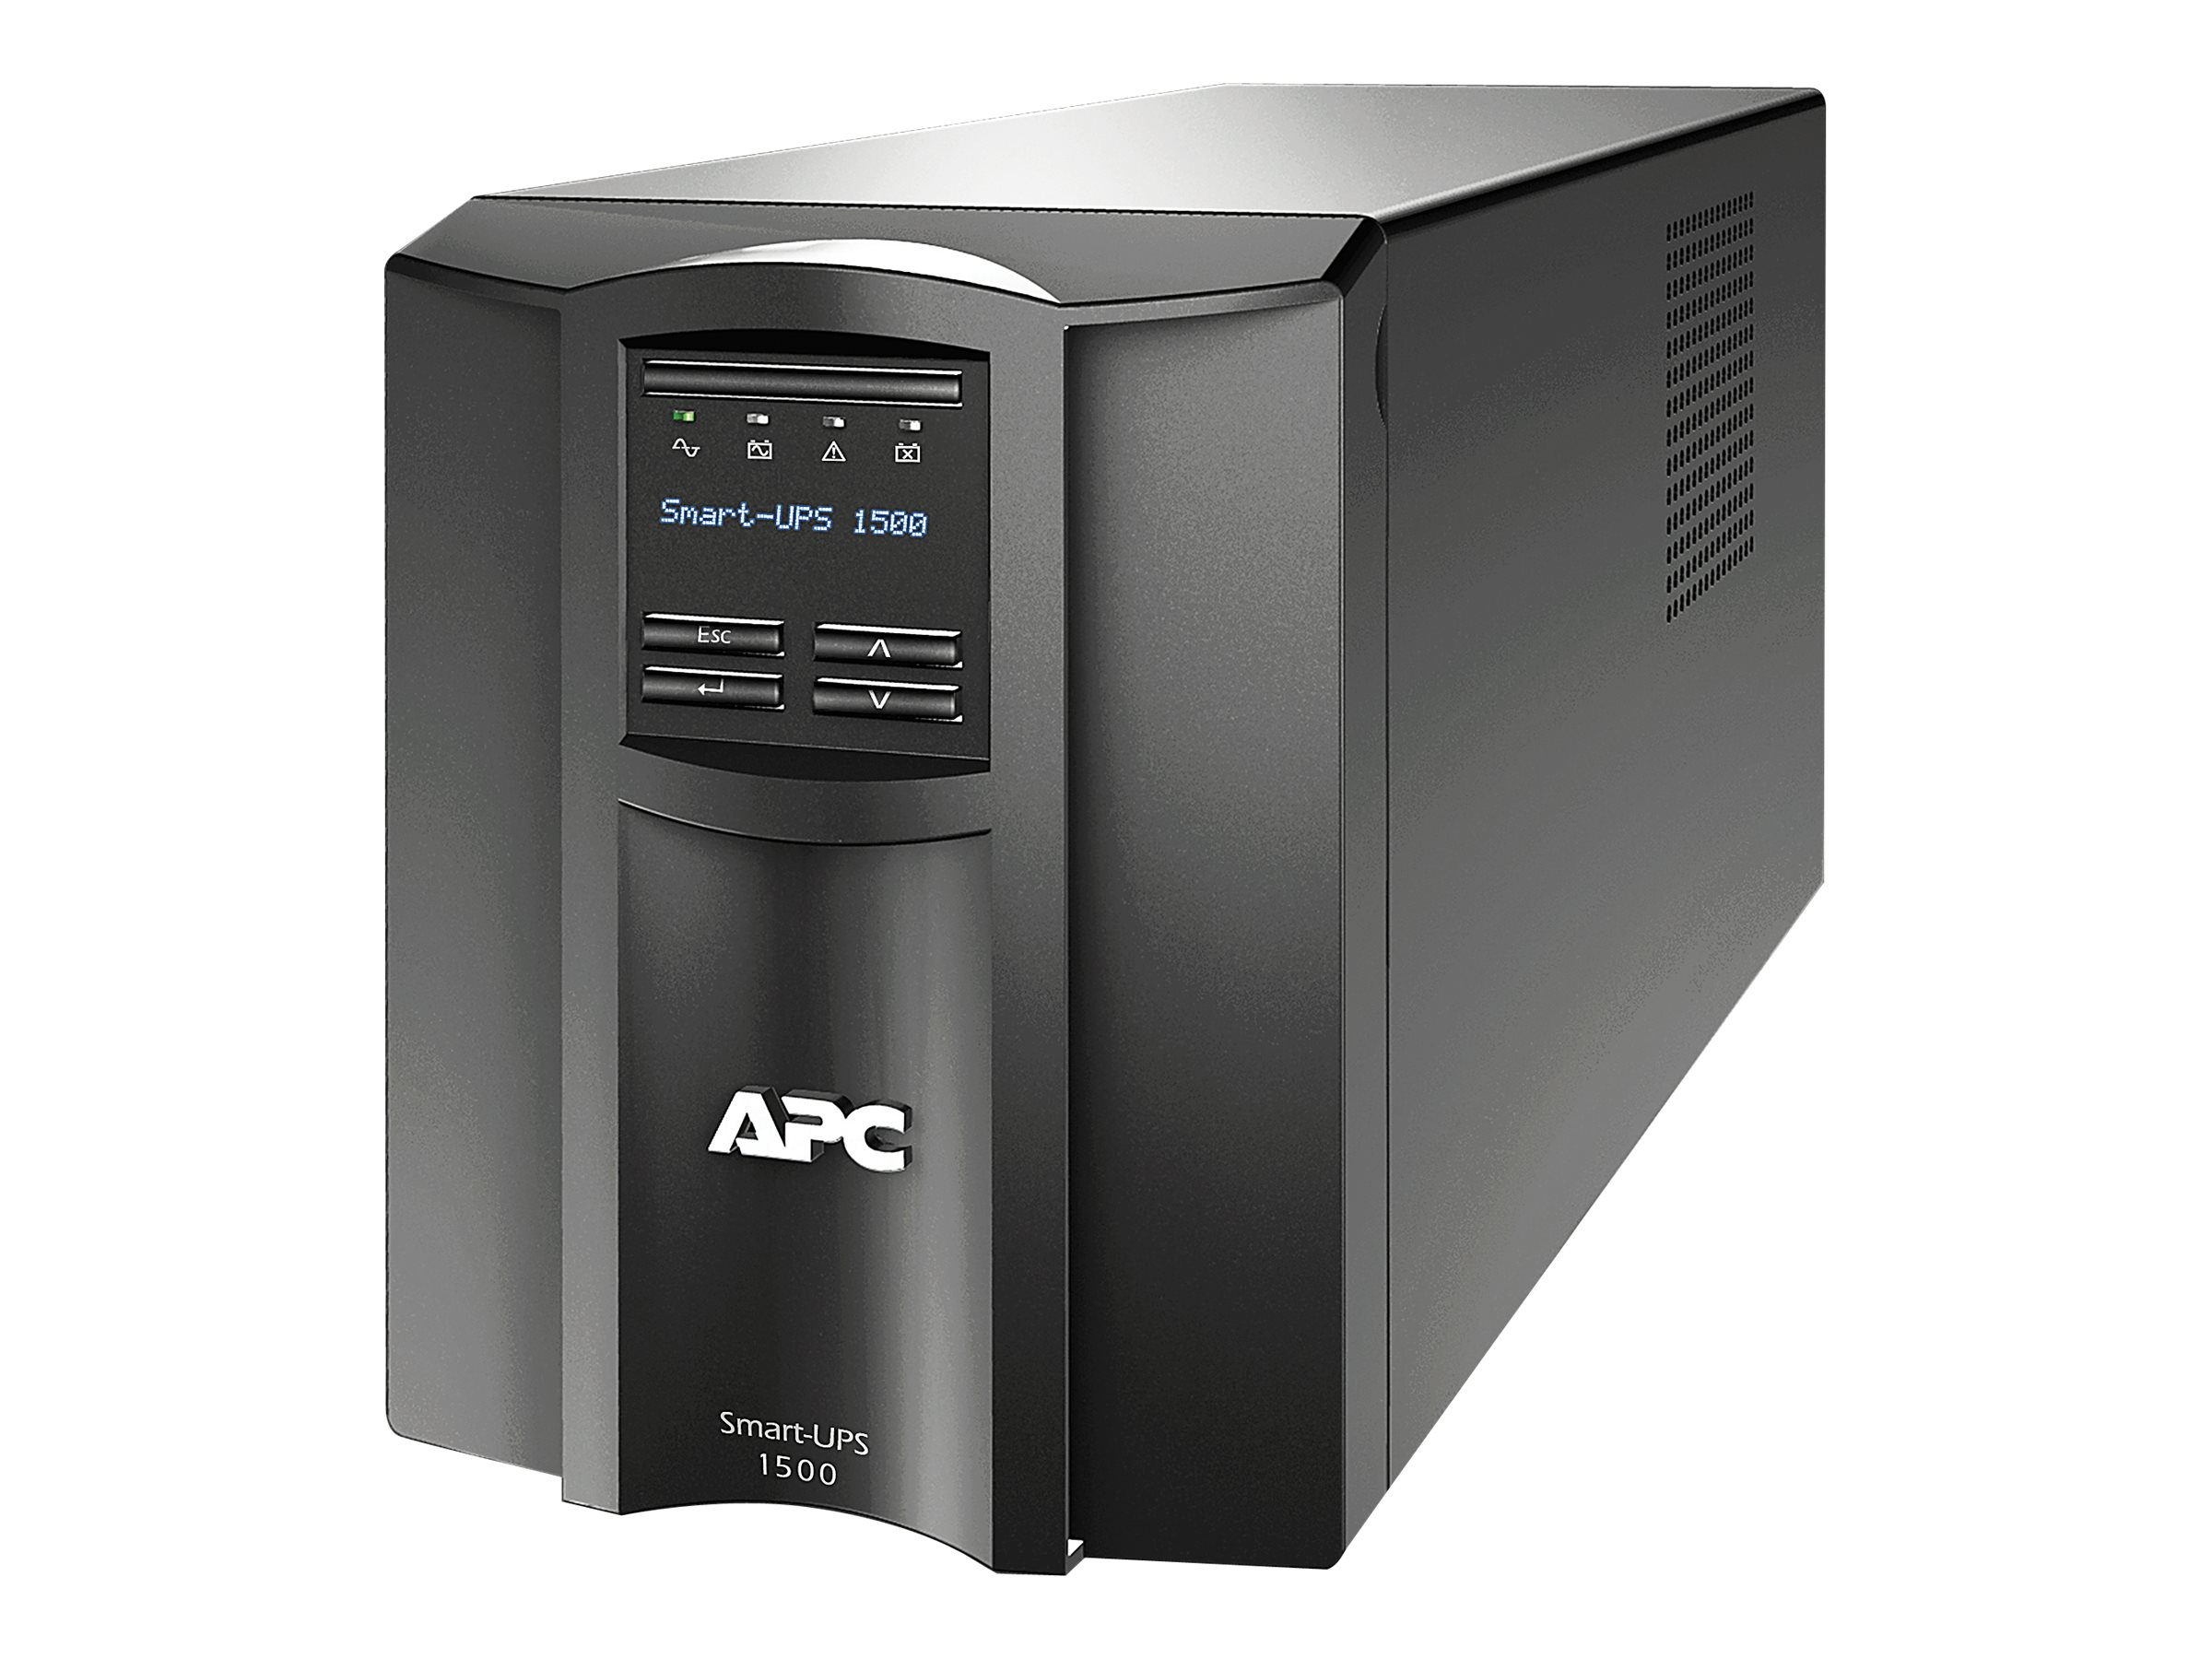 APC Smart-UPS 1500VA 980W 120V LCD Tower UPS (8) 5-15R Outlets USB Serial, Instant Rebate - Save $18, SMT1500, 10334485, Battery Backup/UPS